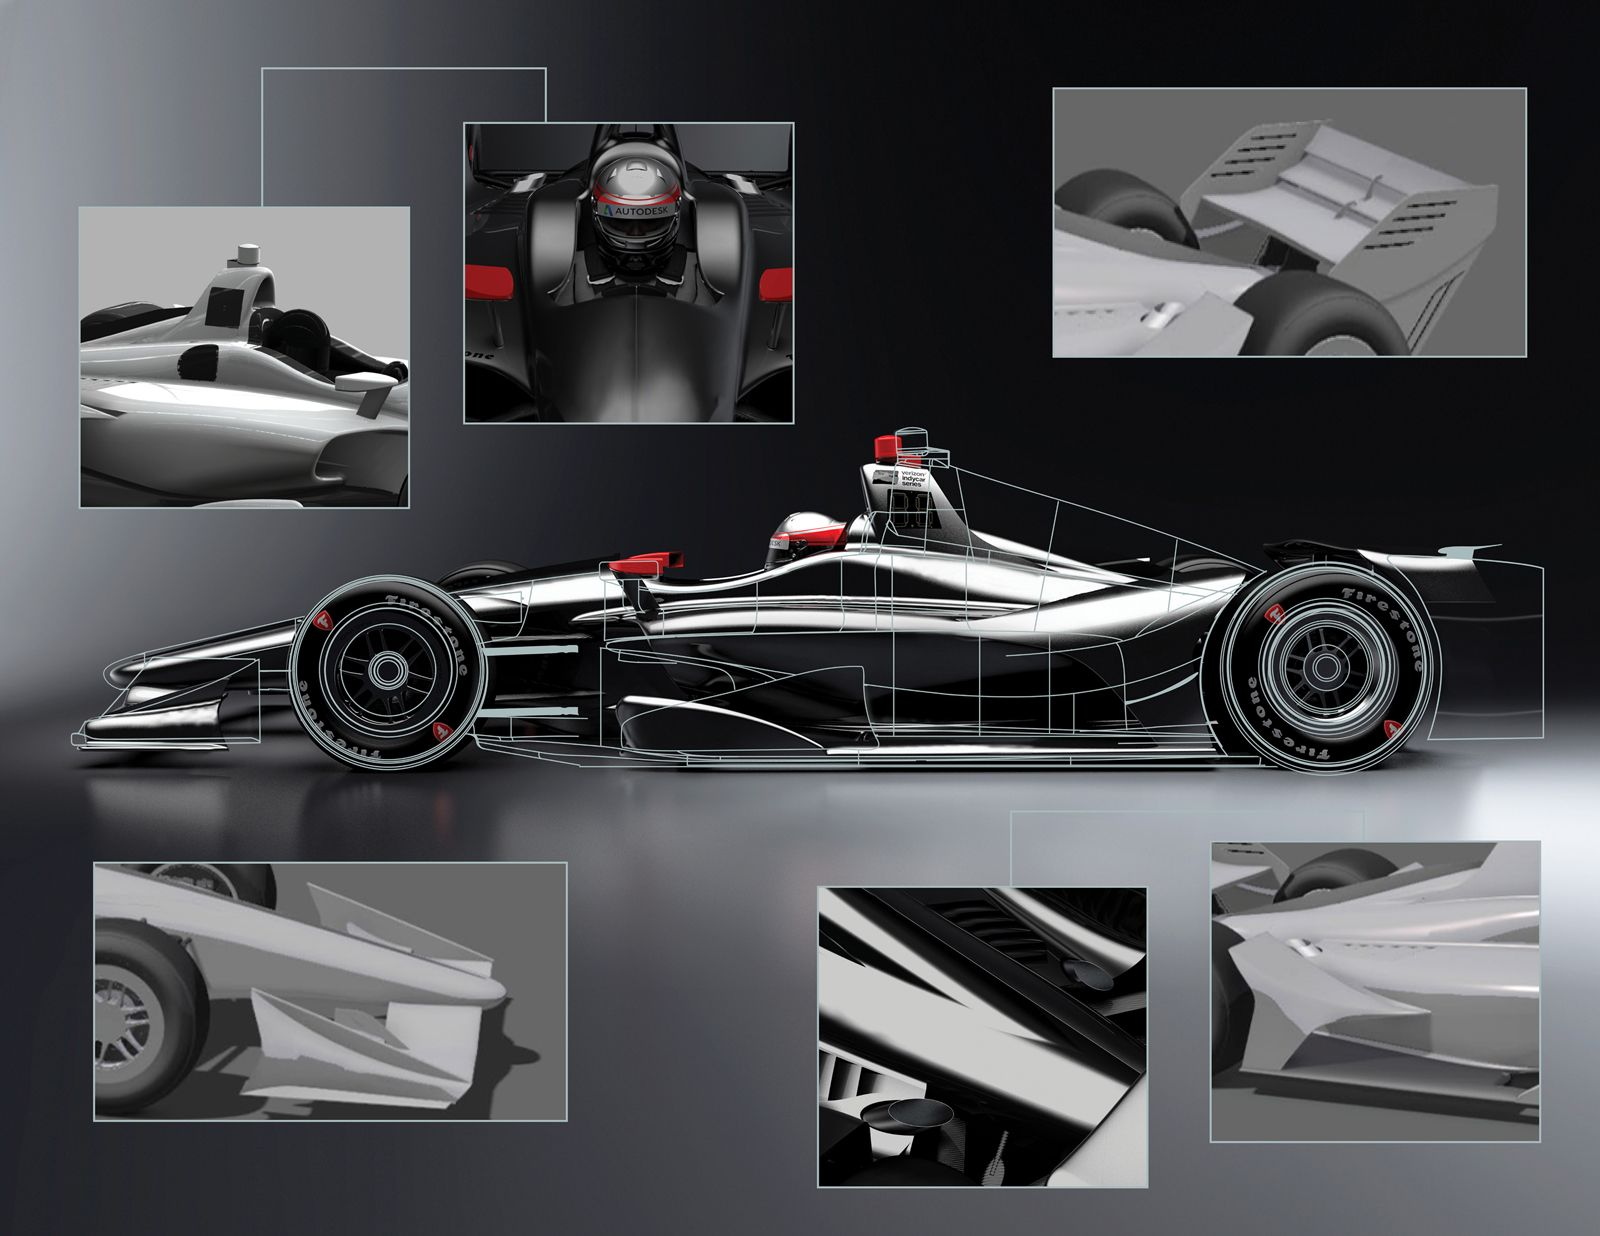 2018 Indycar Dallara Single Seater First Images Are Here You Might Remember How Indycar Invited Chevy And Honda Two Years Ago T Indy Cars Indycar Series Car